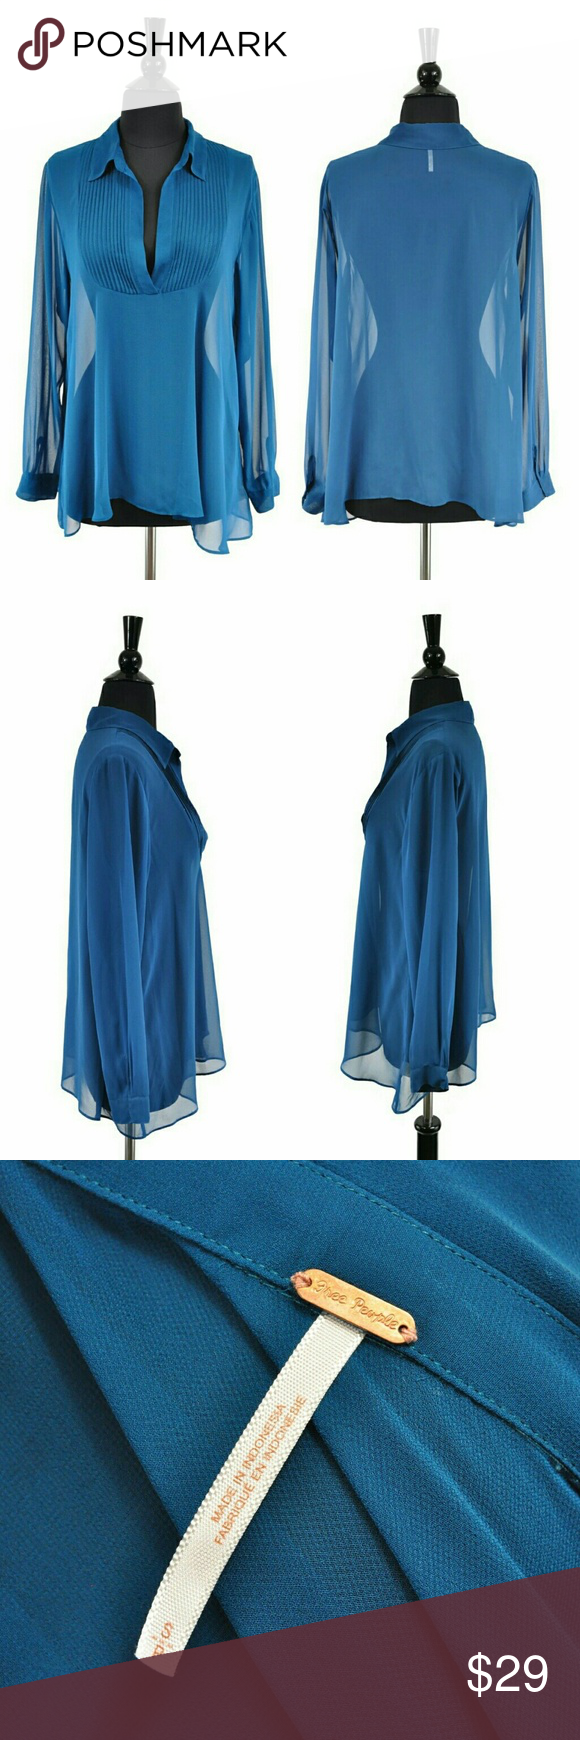 """Free People Blue Sheer Boho Pleated V-Neck Blouse Details Brand: Free People Size: Small / S Material: 100% Polyester Color: Blue Condition: Very Good, pre-owned. No rips, stains, or flaws present.   Measurements Bust: 36"""" Waist: 40"""" Sleeve: 23.5"""" Length: 25"""" Free People Tops Blouses"""